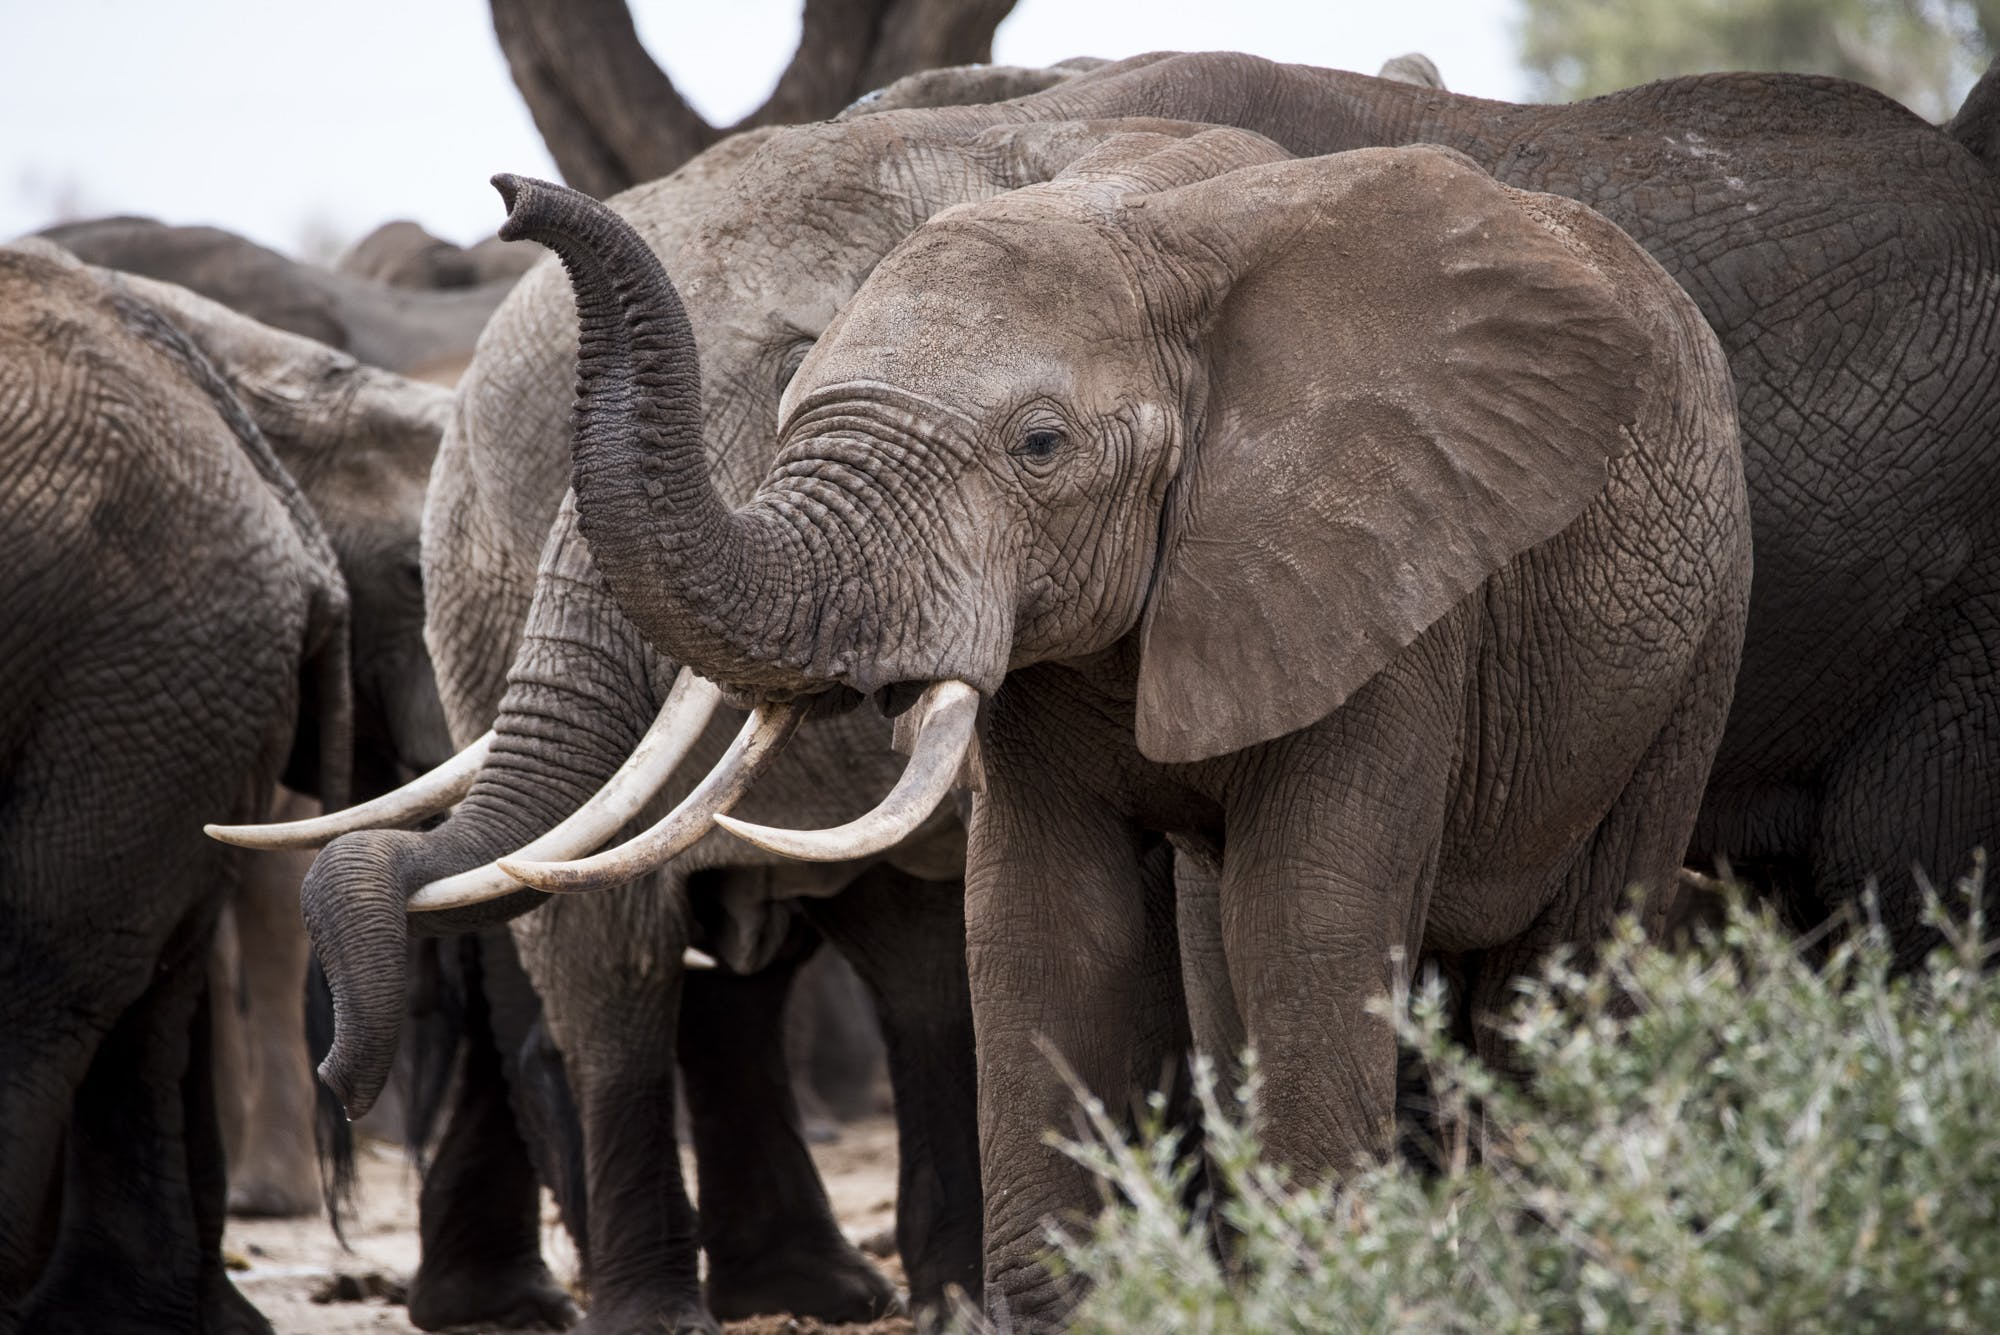 About Elephant Crisis Fund